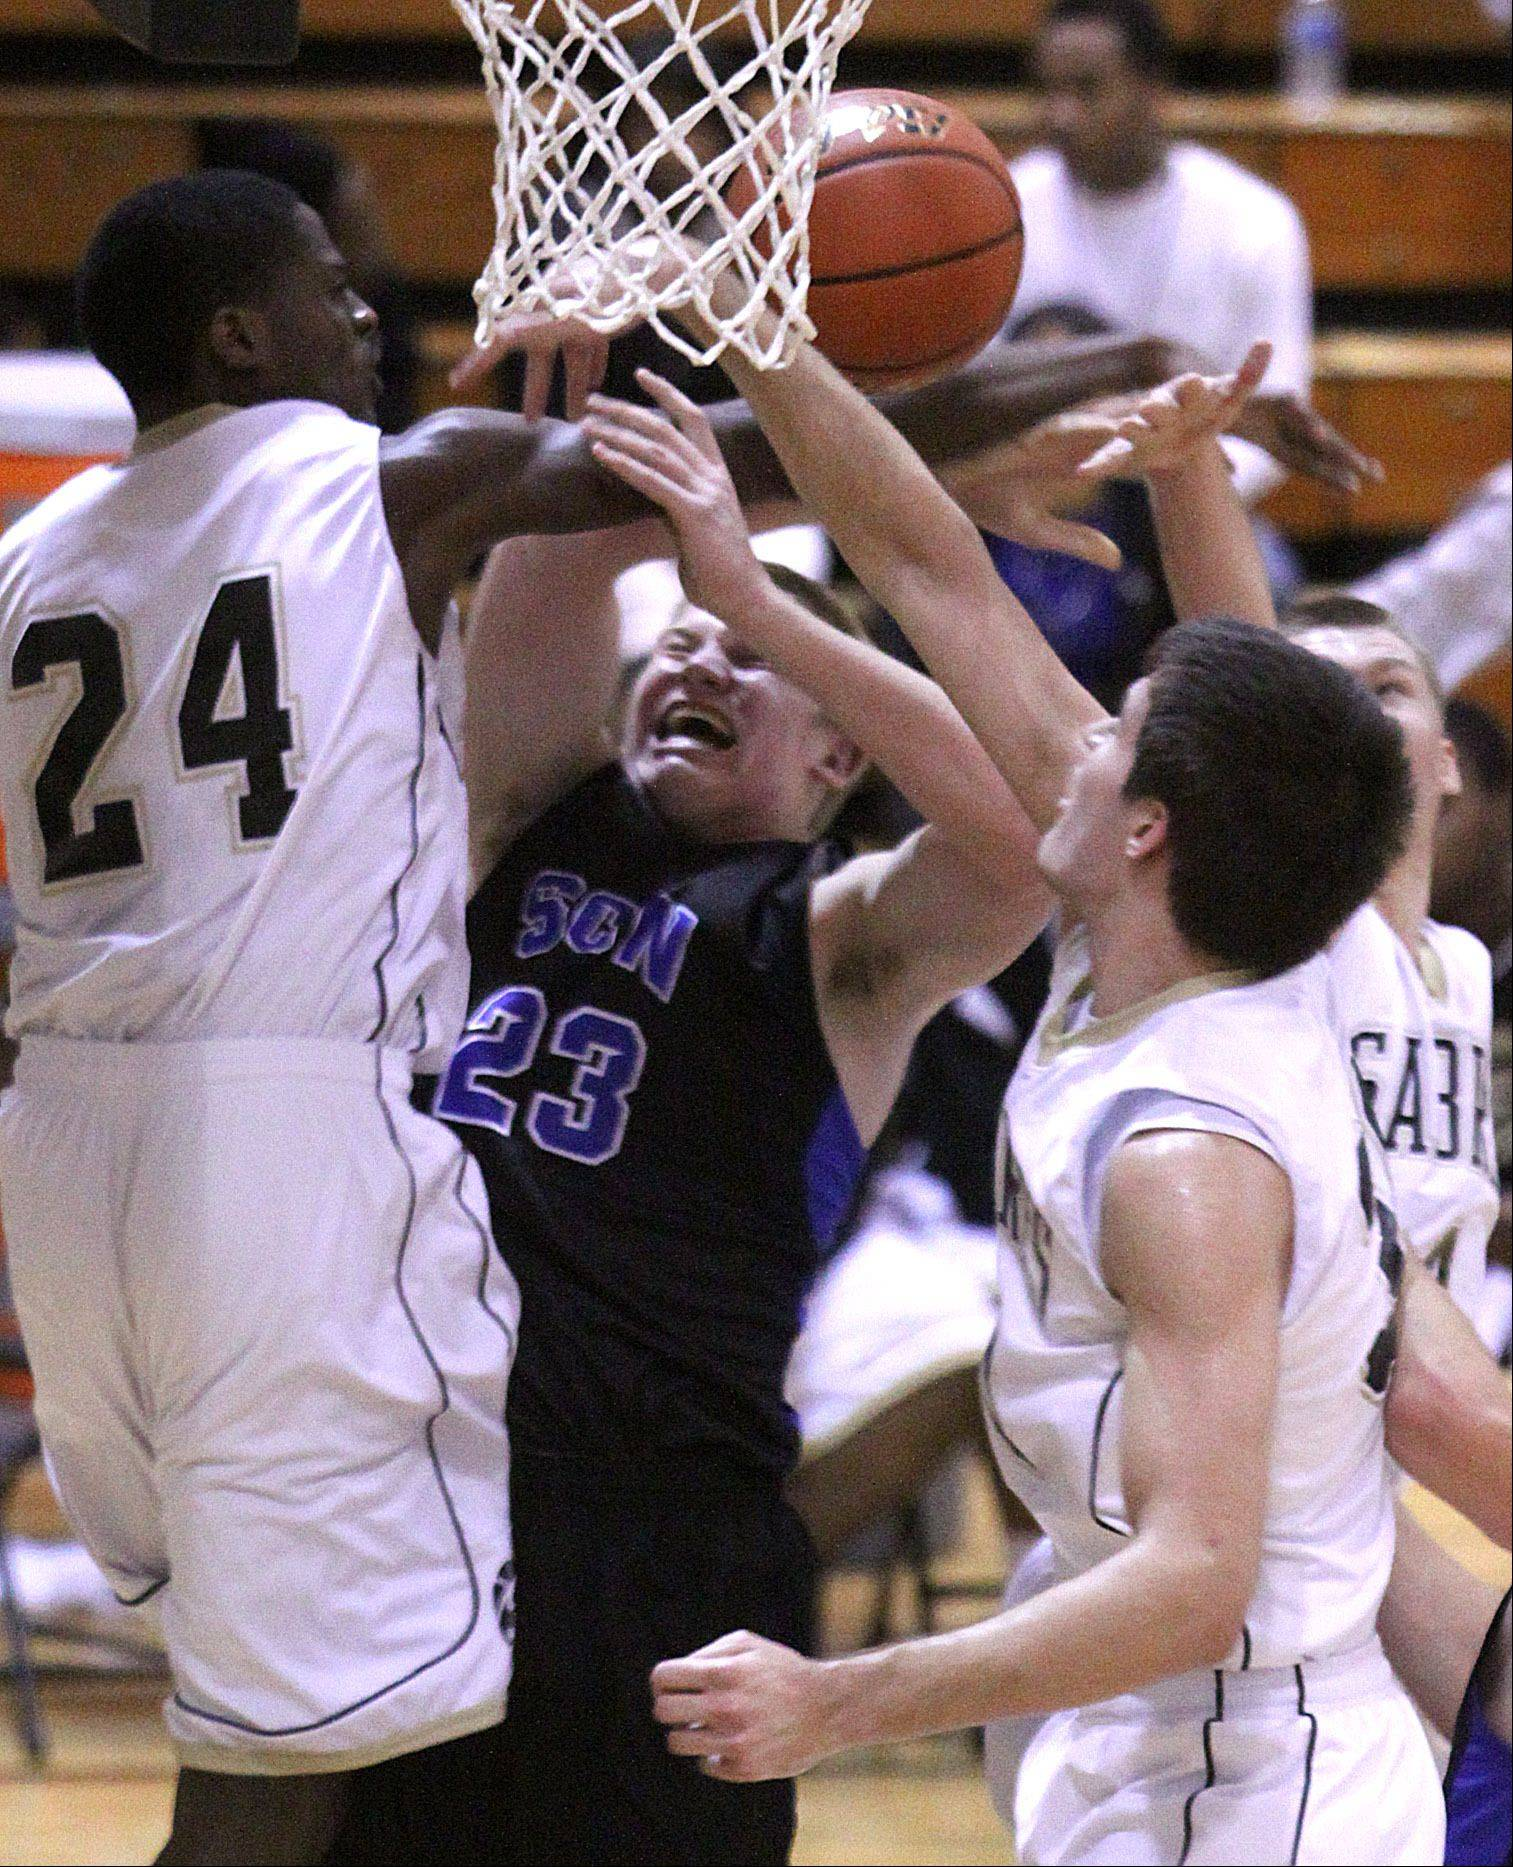 Streamwood's Joel Lightbourne, left, and Zack Harris, right, try to stop St Charles North's Justin Stanko, center.